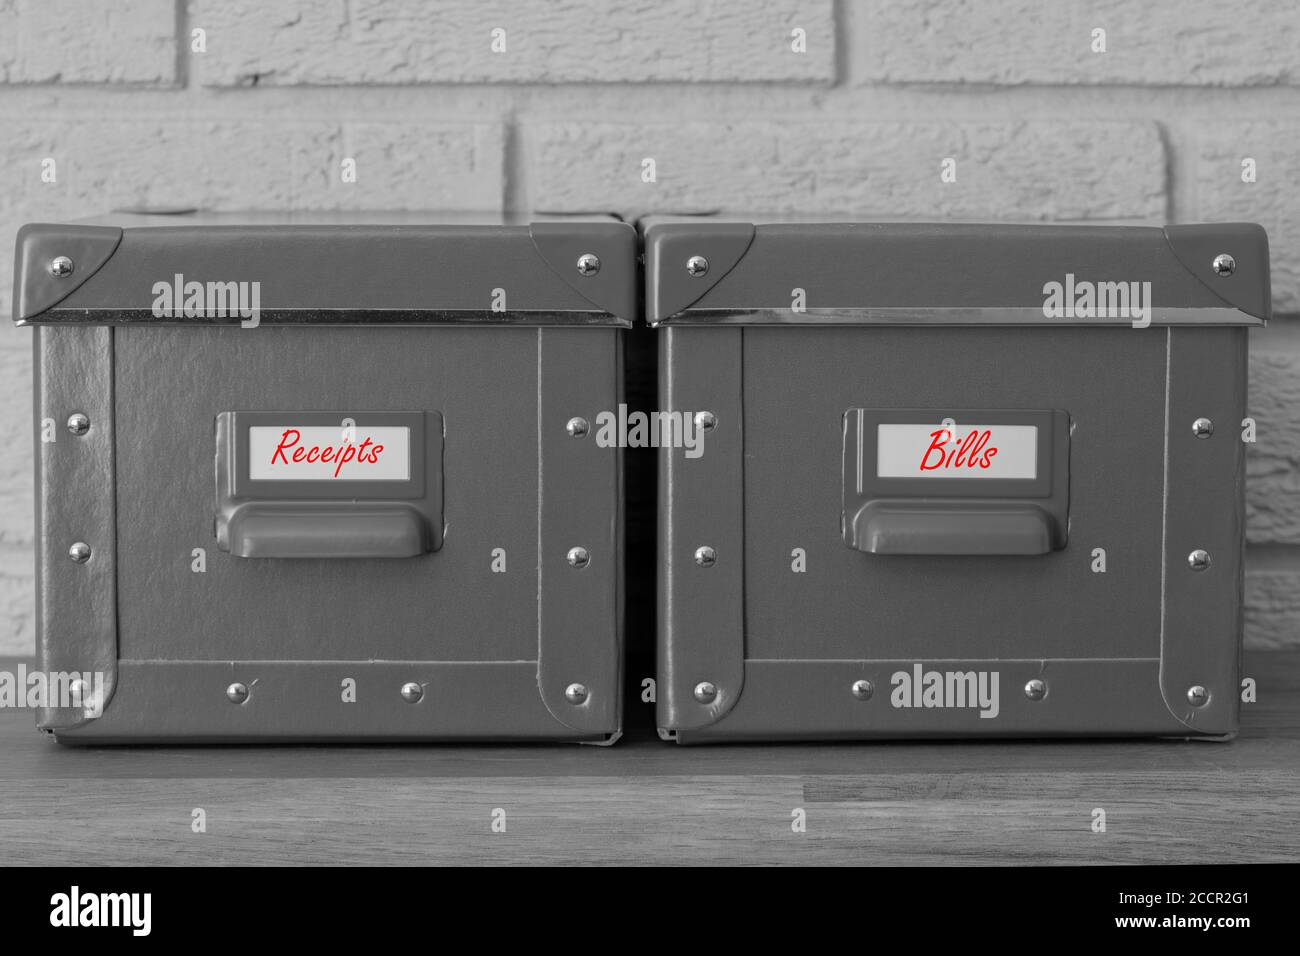 Storage boxes with receipts and bills written on labels in red.  With a grey brick background Stock Photo